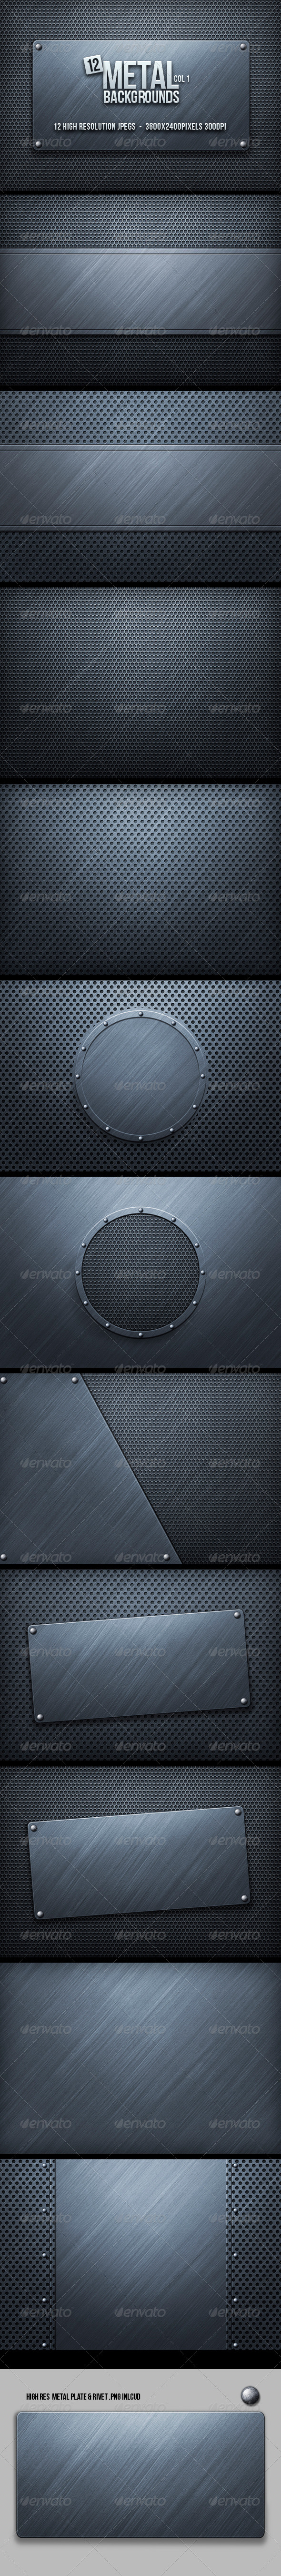 Metal Backgrounds - Tech / Futuristic Backgrounds